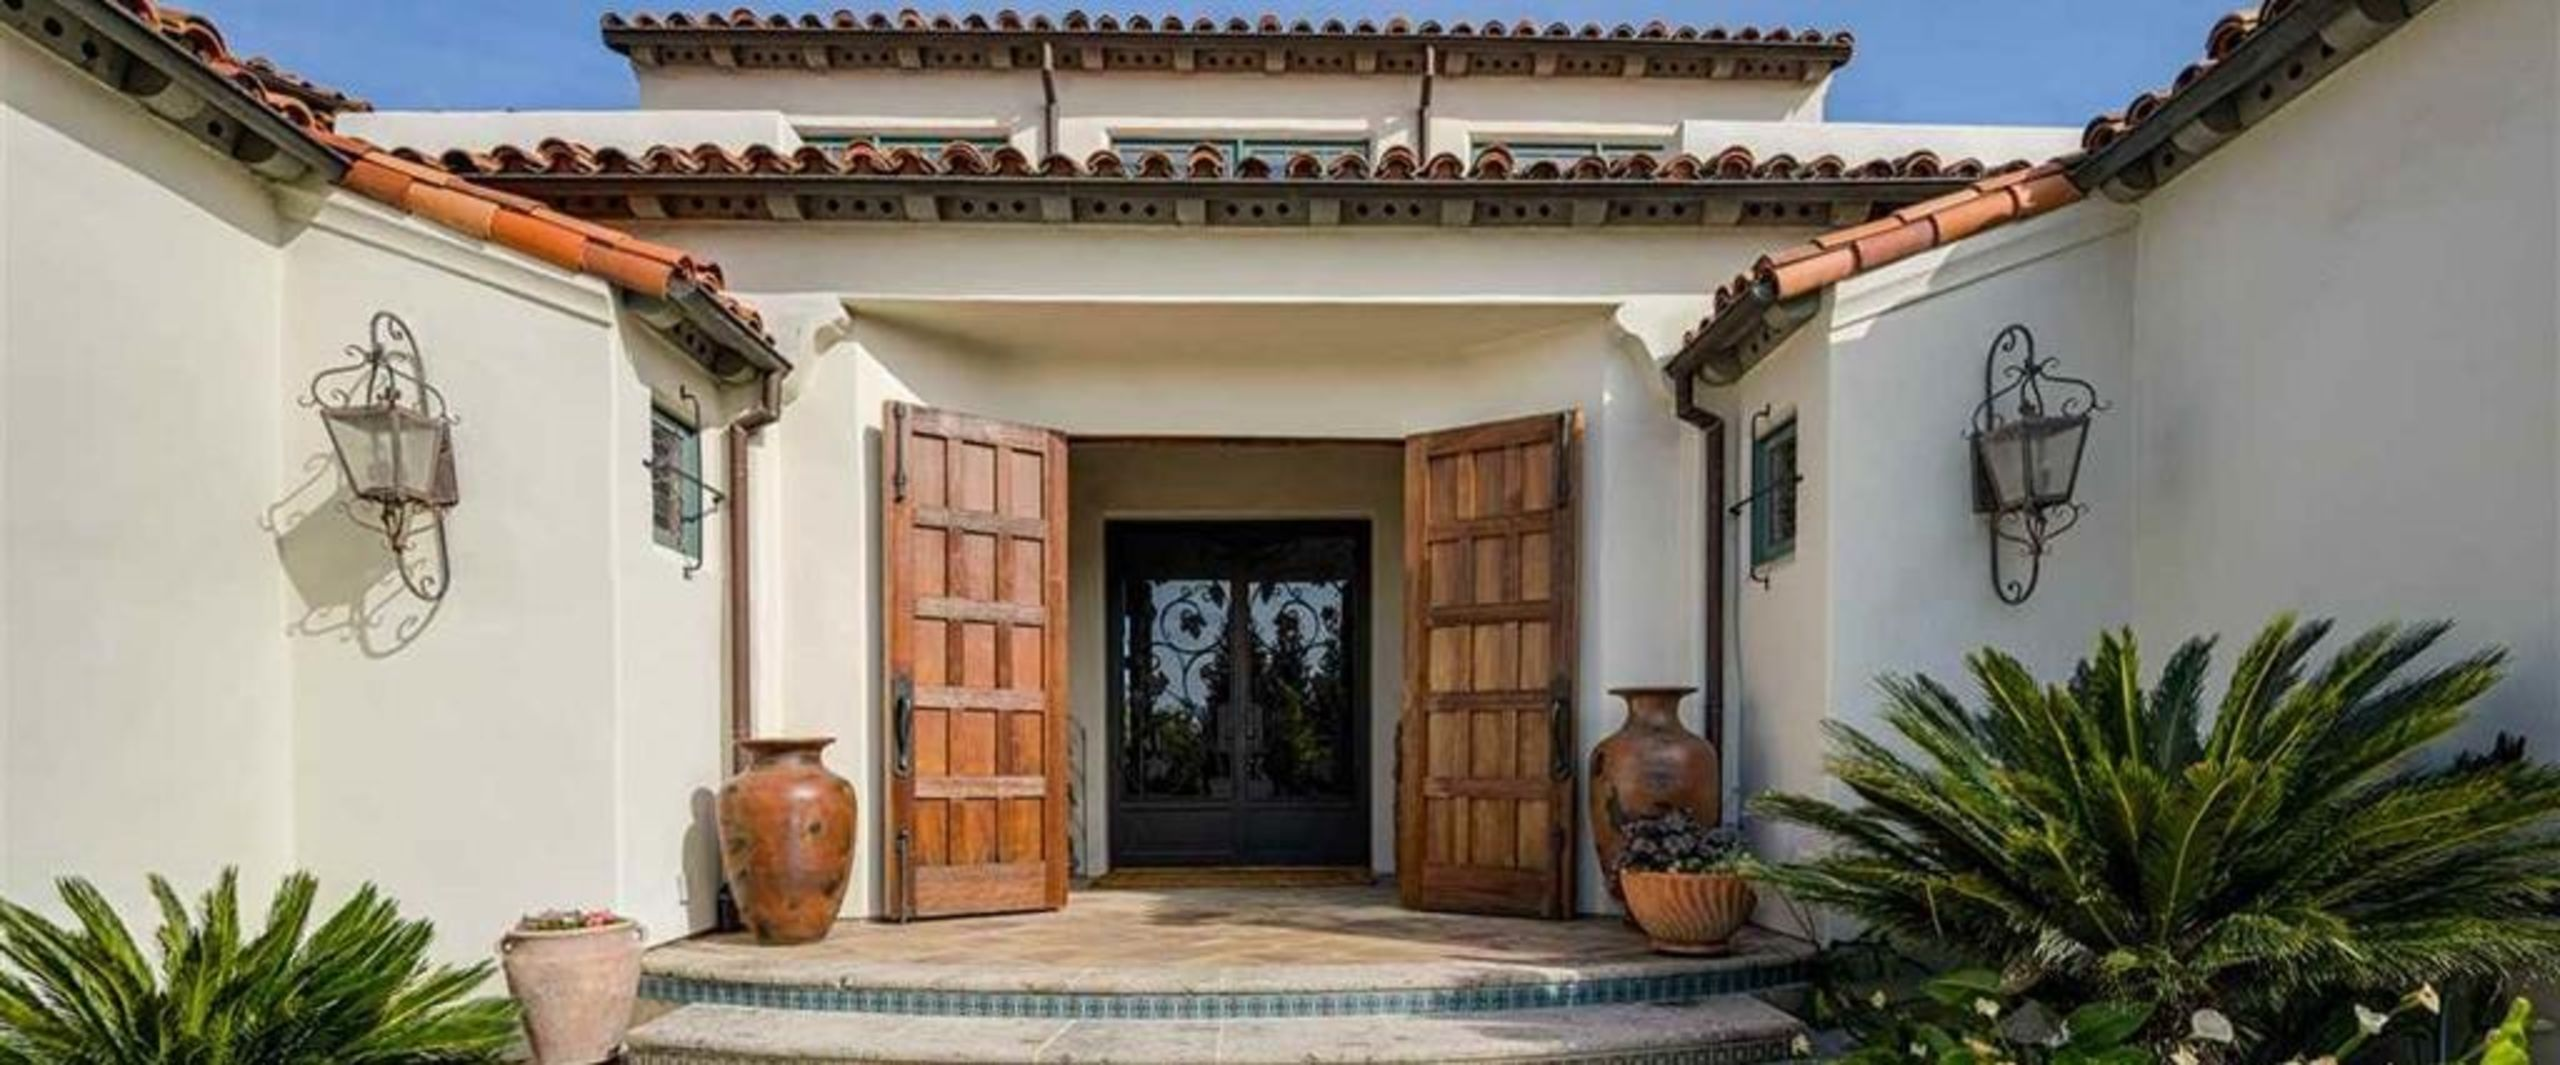 Pleasanton Authentic Spanish Mission Style Home